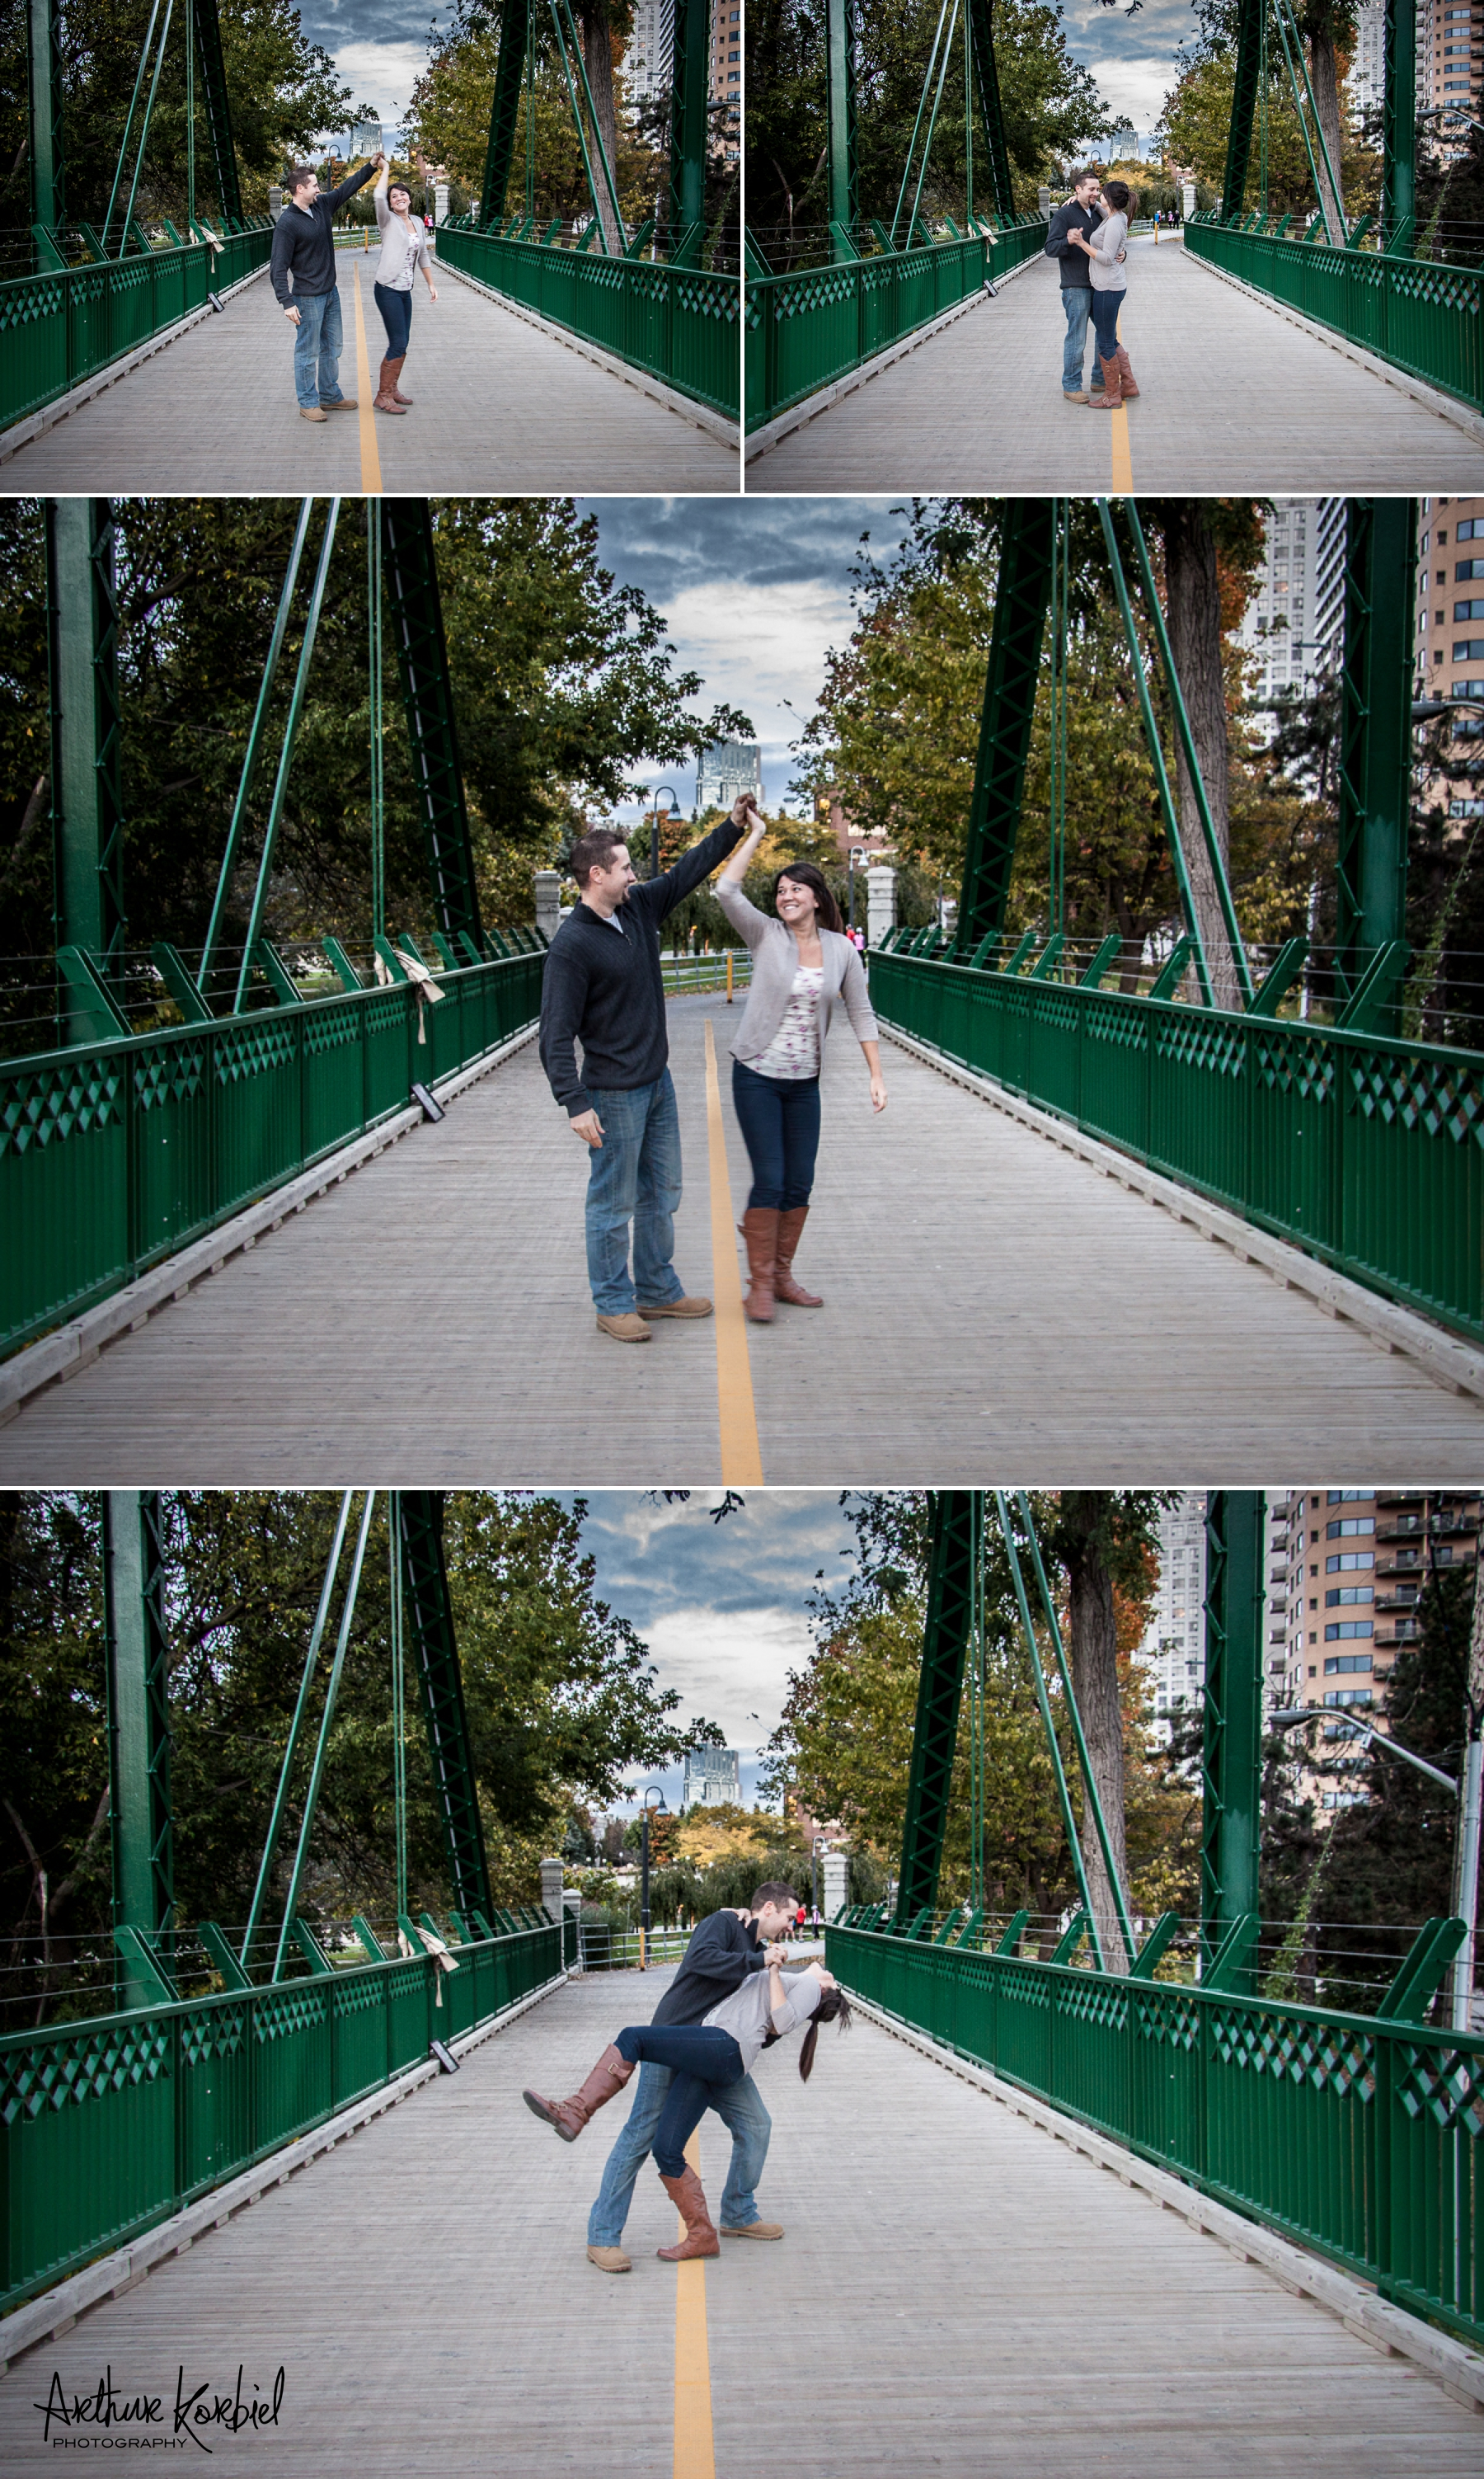 Arthur Korbiel Photography - London Engagement Photographer - Katie & Mike_007.jpg